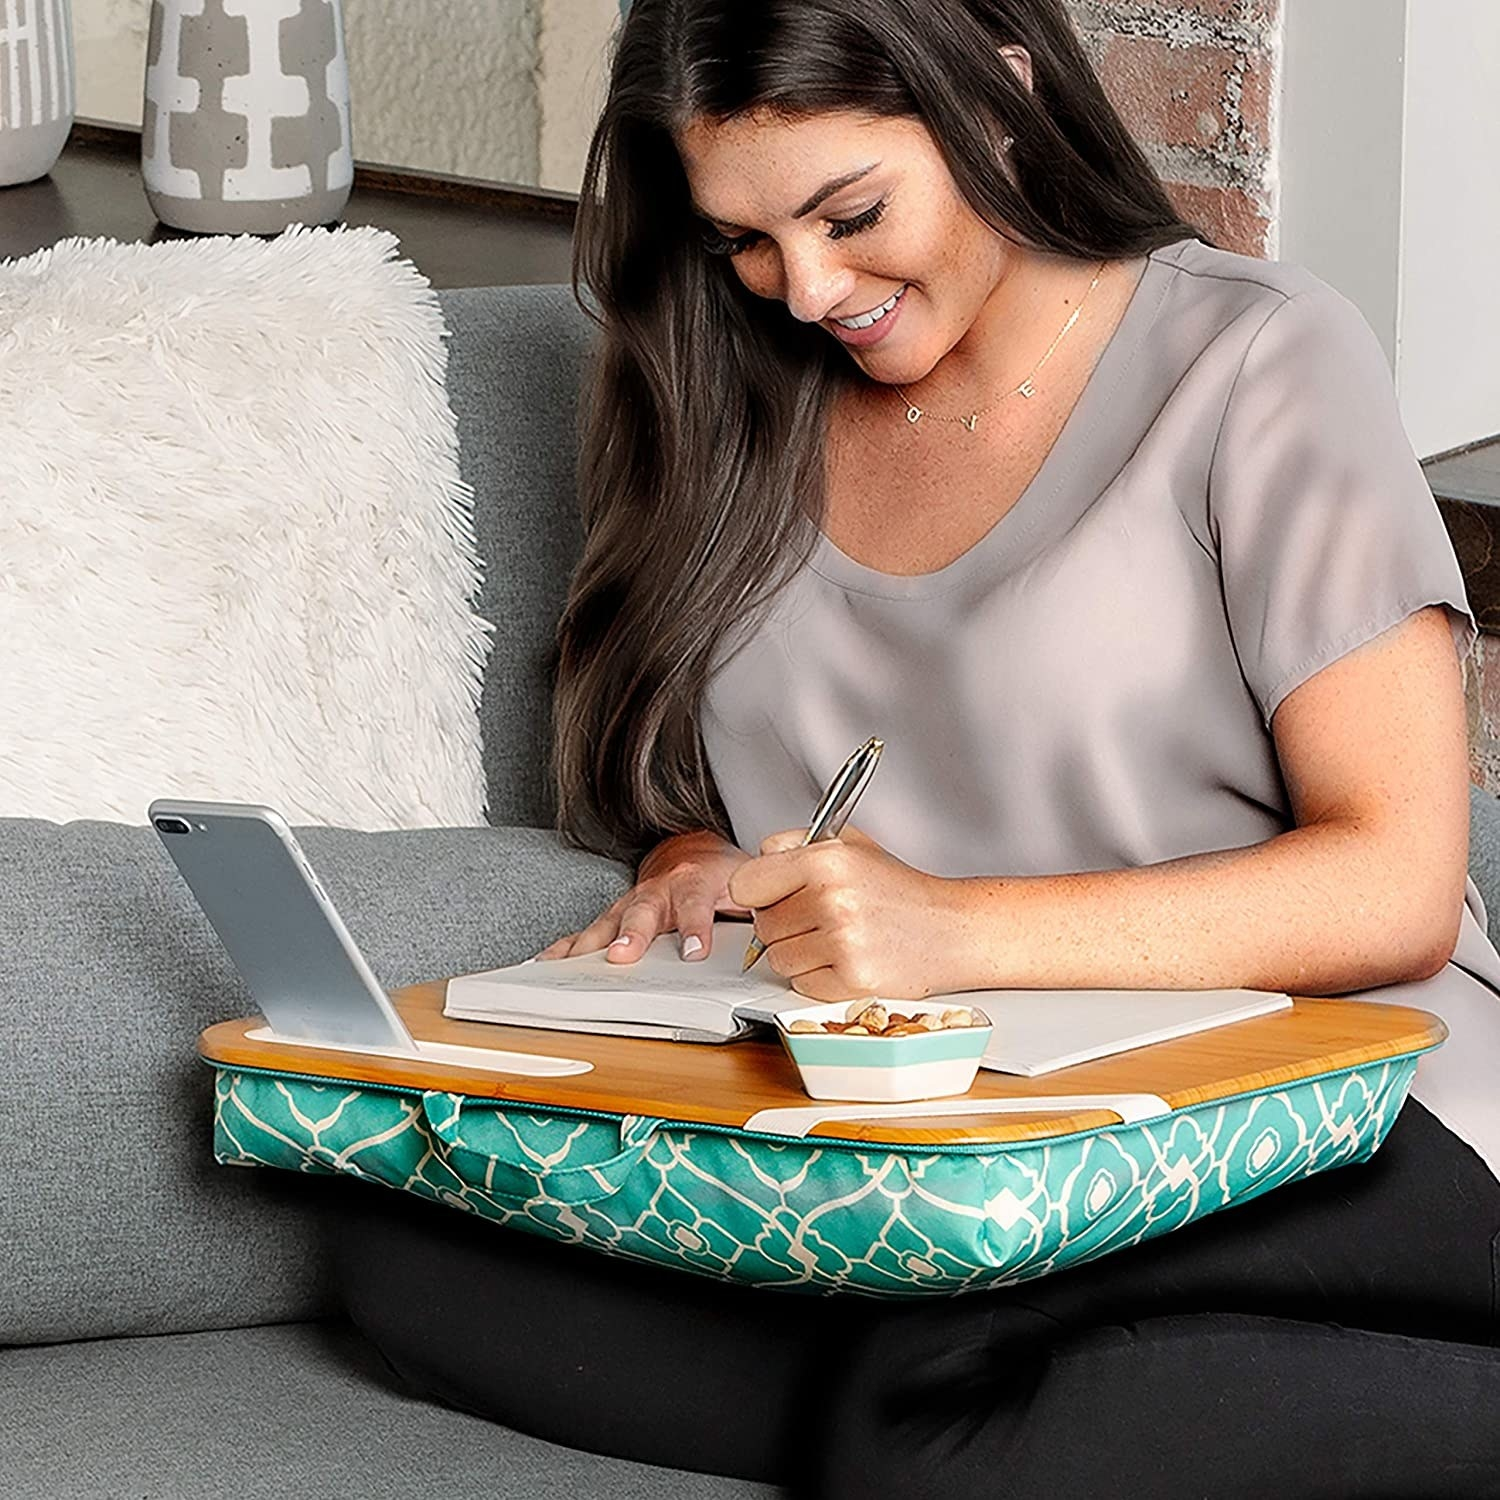 model with the light wood-like top and teal patterned fabric bottom on their lap with a book, phone, and snacks on it